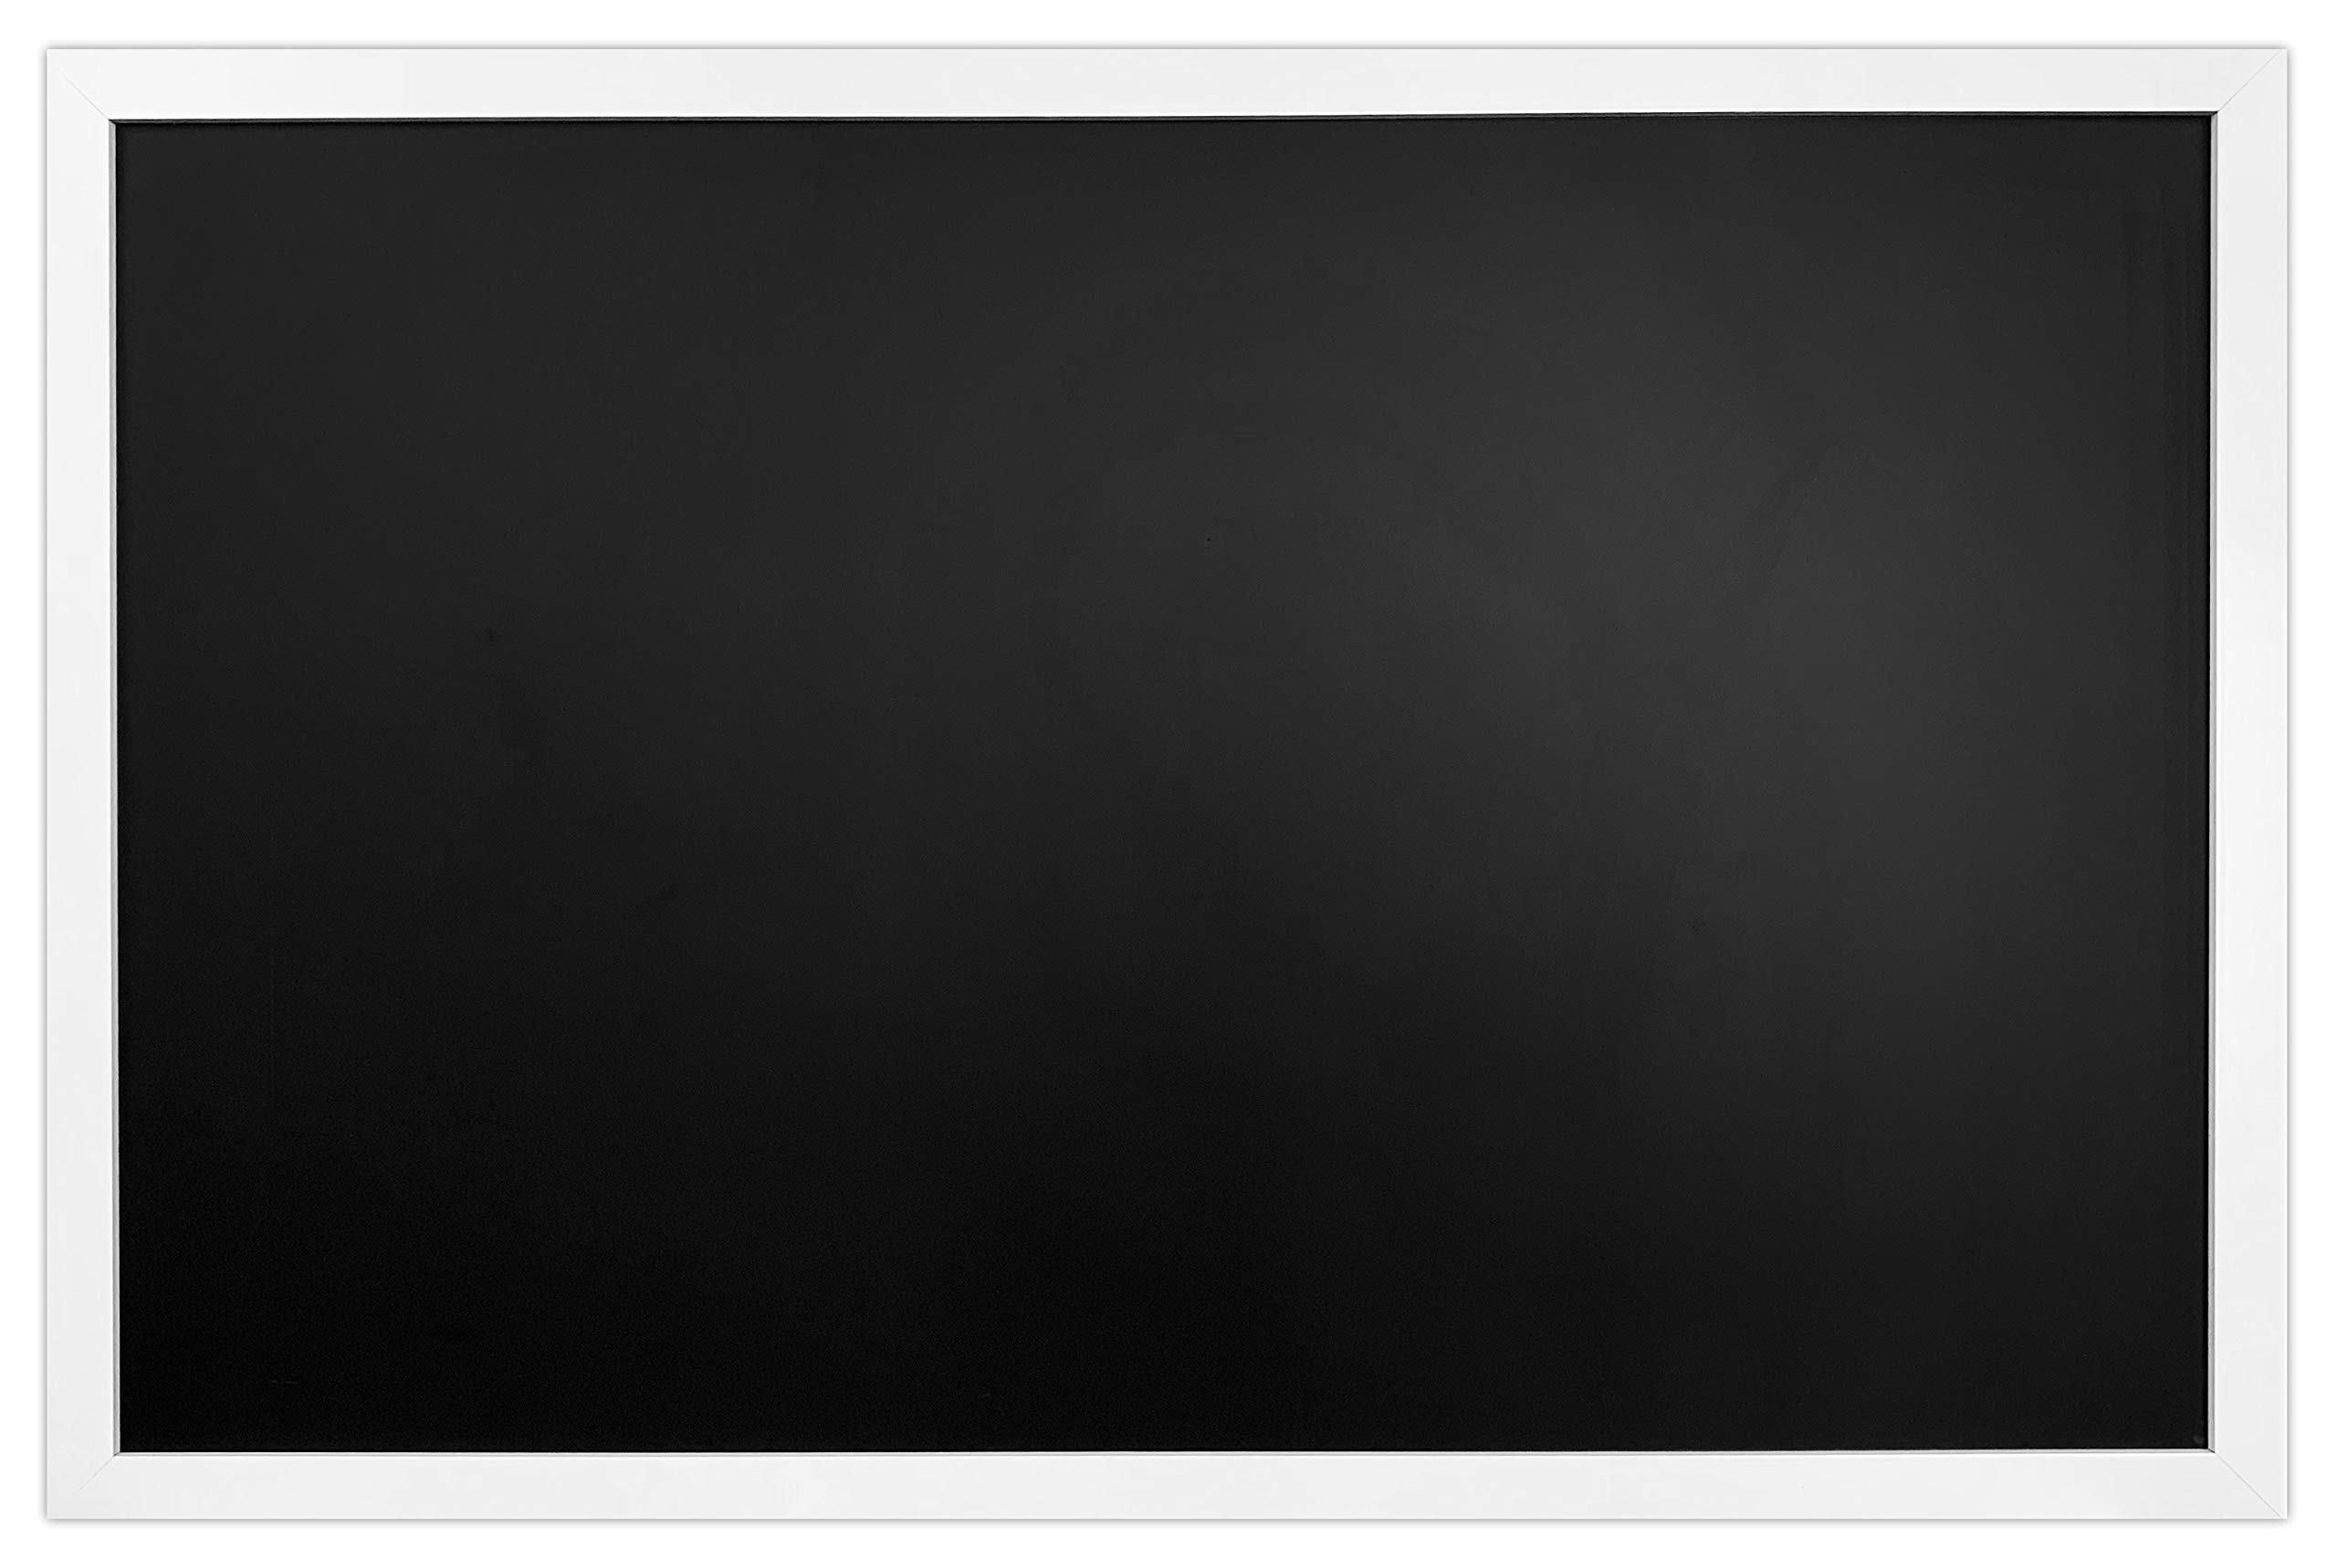 White Wood Premium Surface Magnetic Large Chalk Board- 24''x36'' Perfect for Chalk Markers and Home Decor